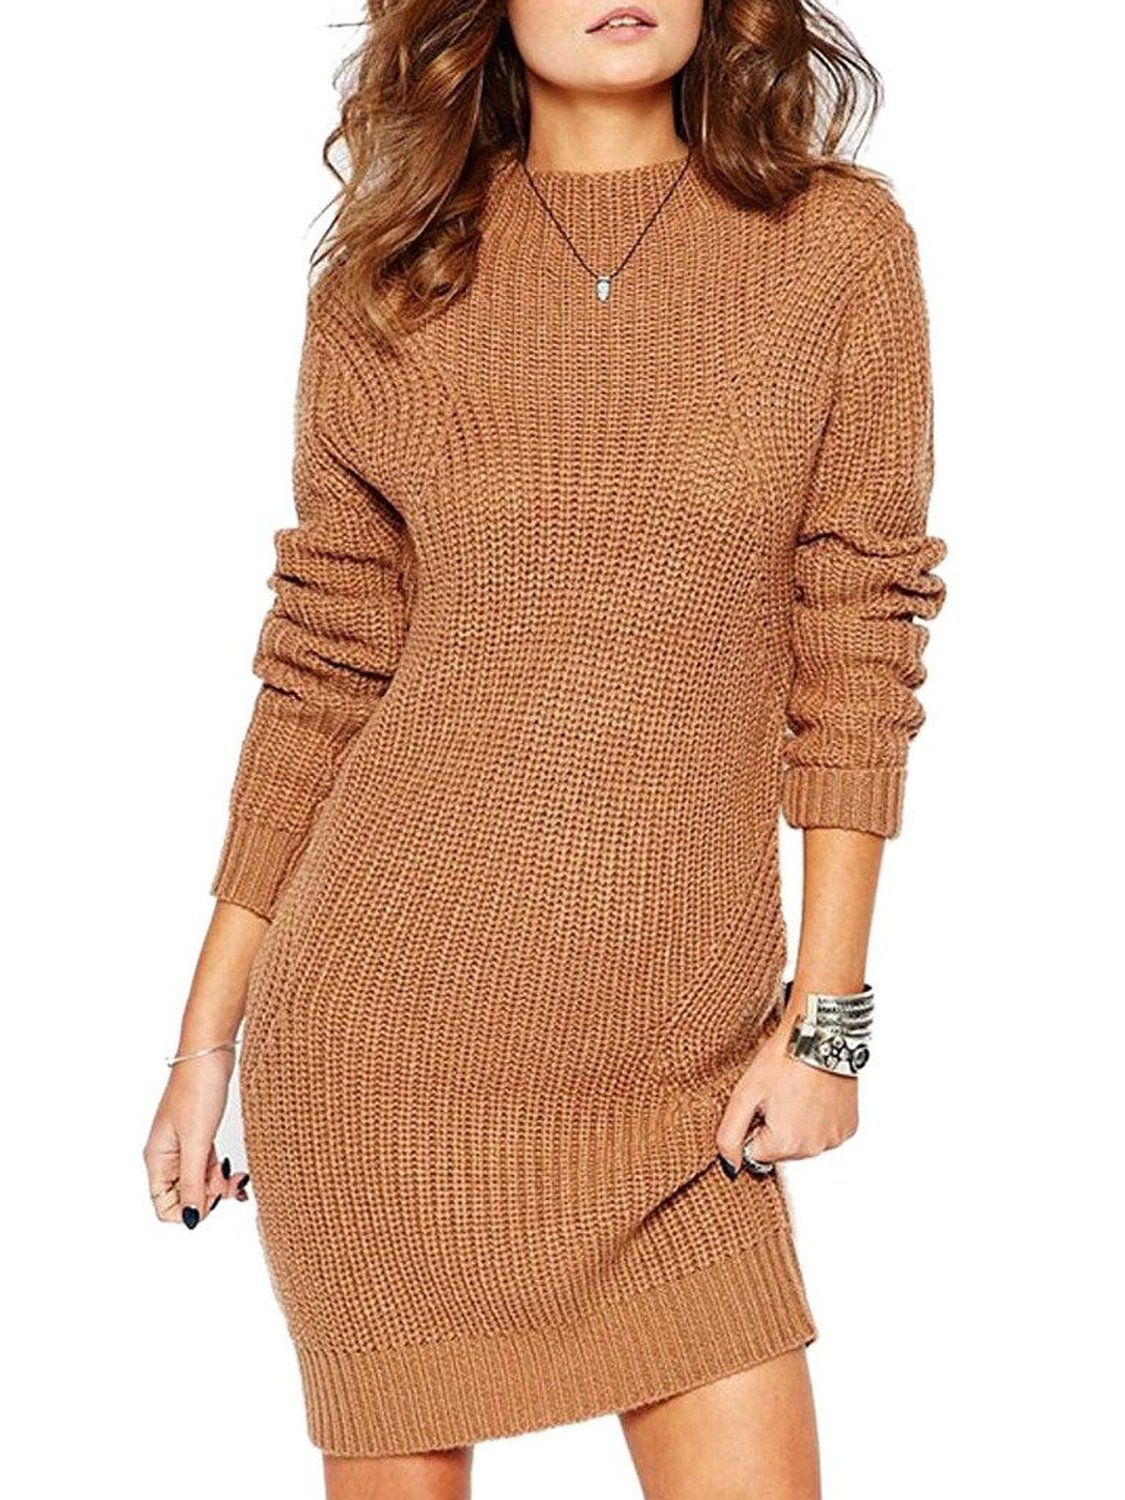 71a556b94d Choies Women s Brown High Neck Cable Chunky Knit Sweater Dress at Amazon Women s  Clothing store